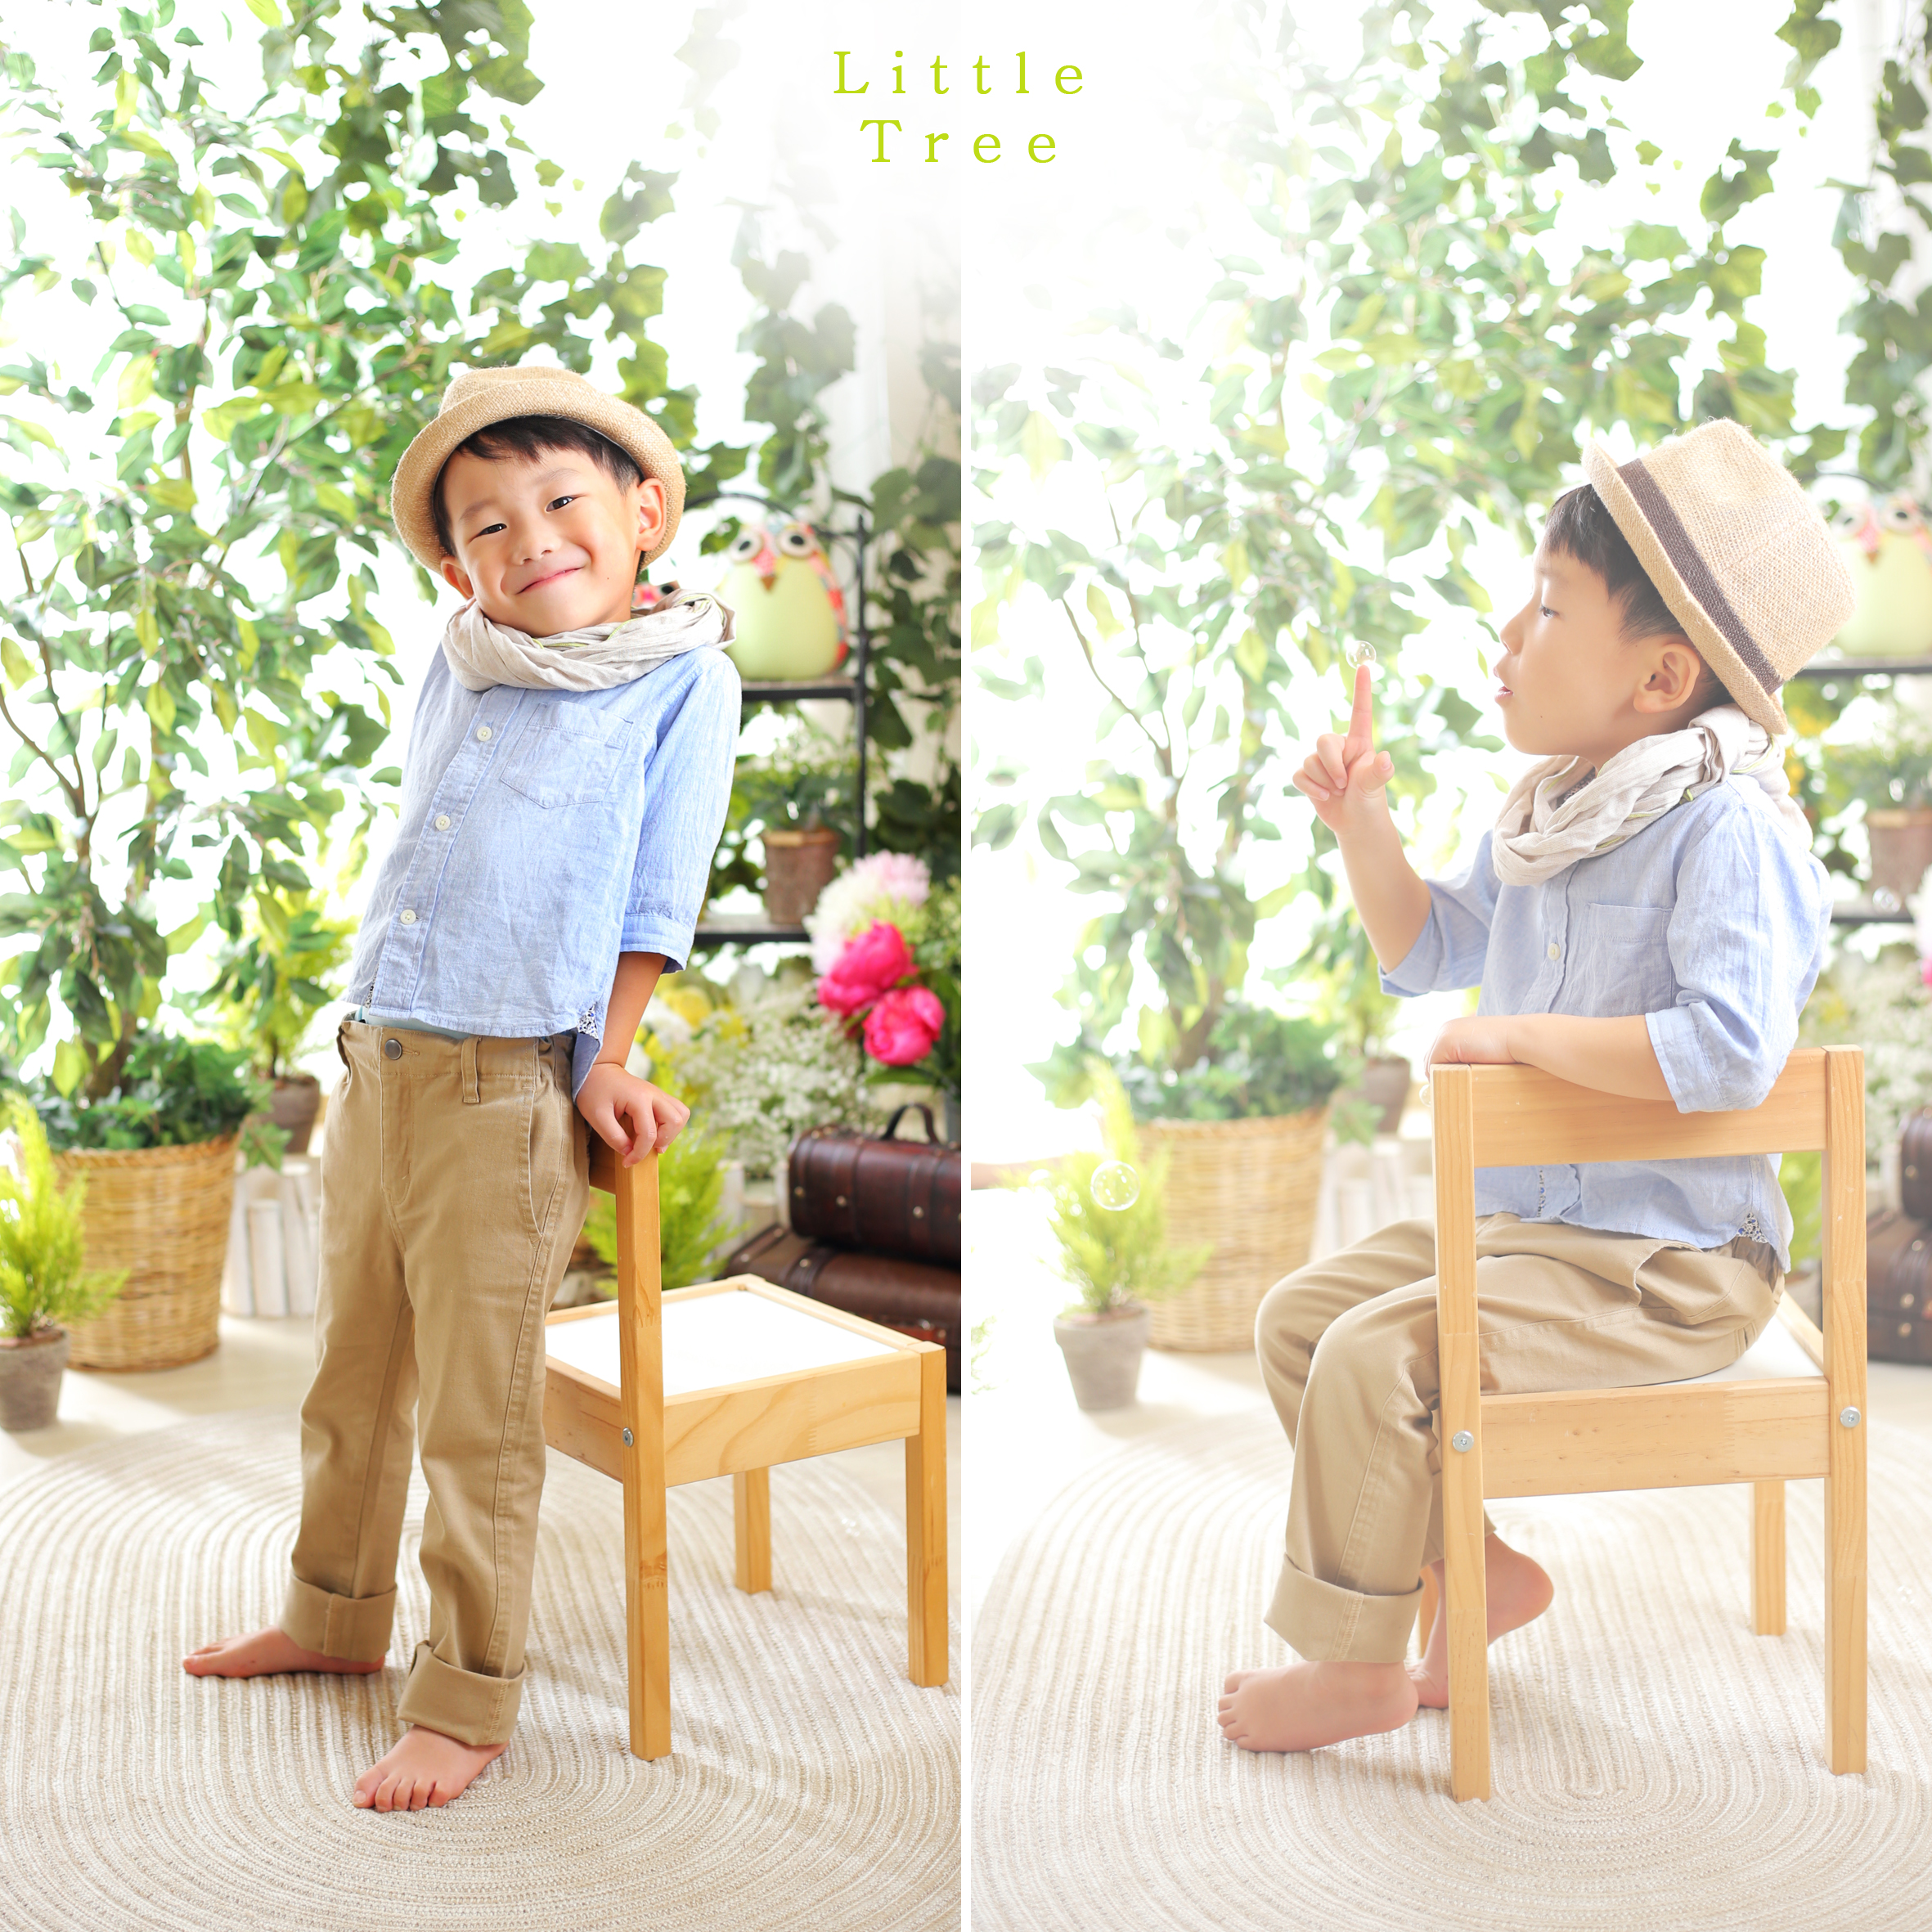 littletree junior45.jpg